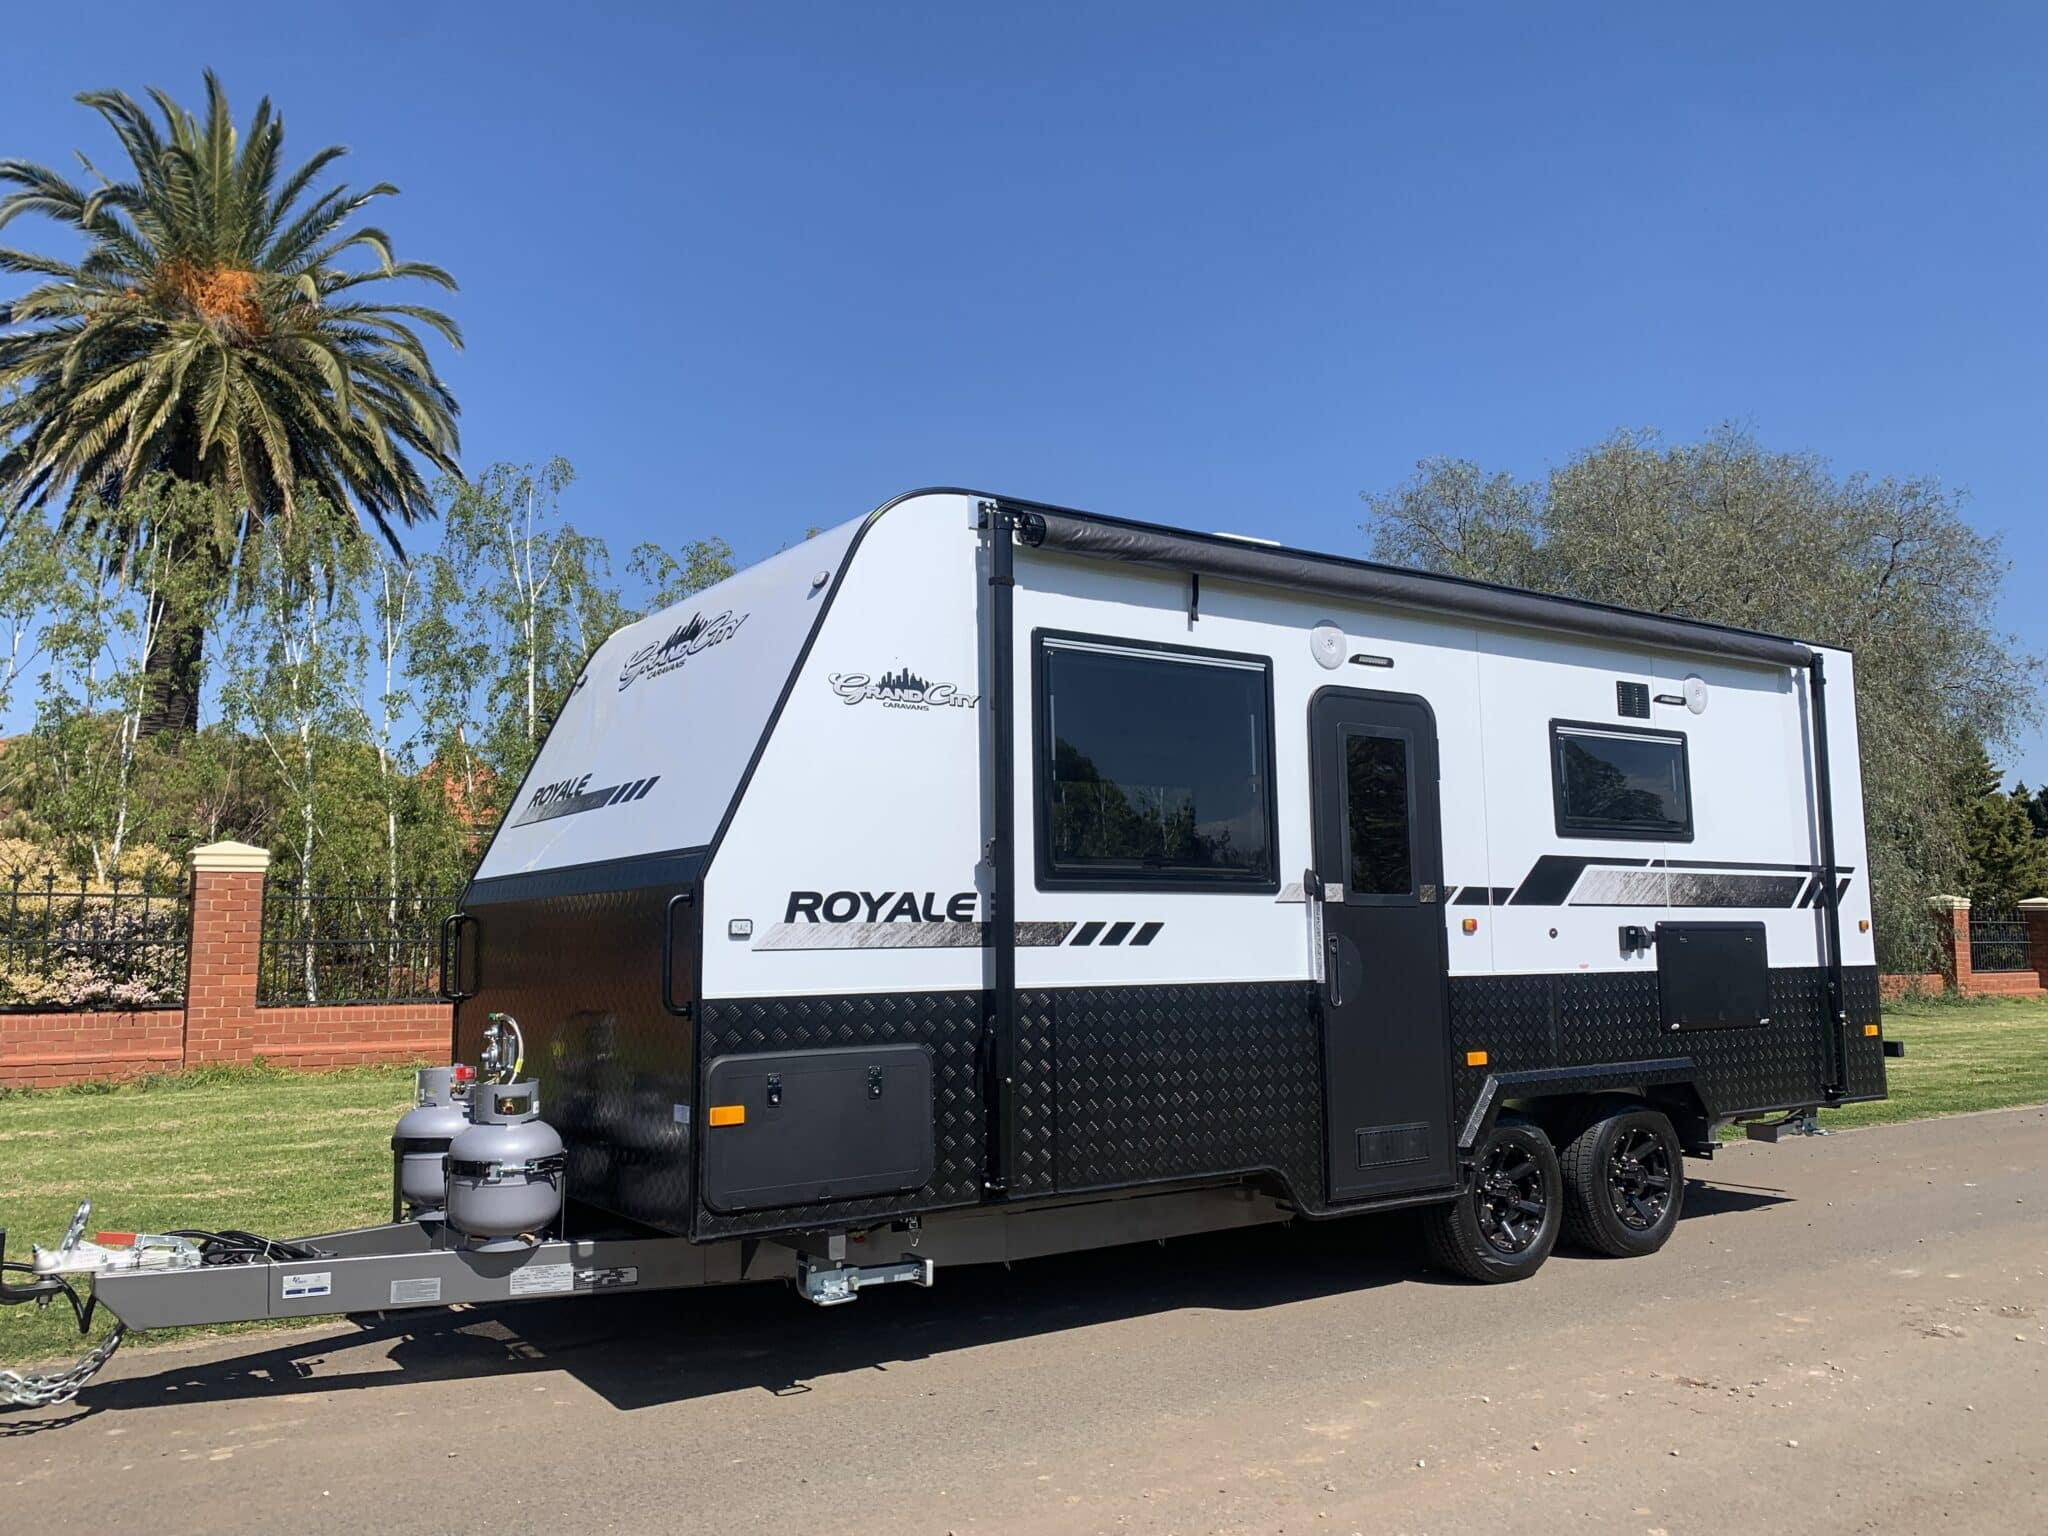 2021 NEW IN STOCK GRAND CITY 19.6ft ROYALE 2 BERTH